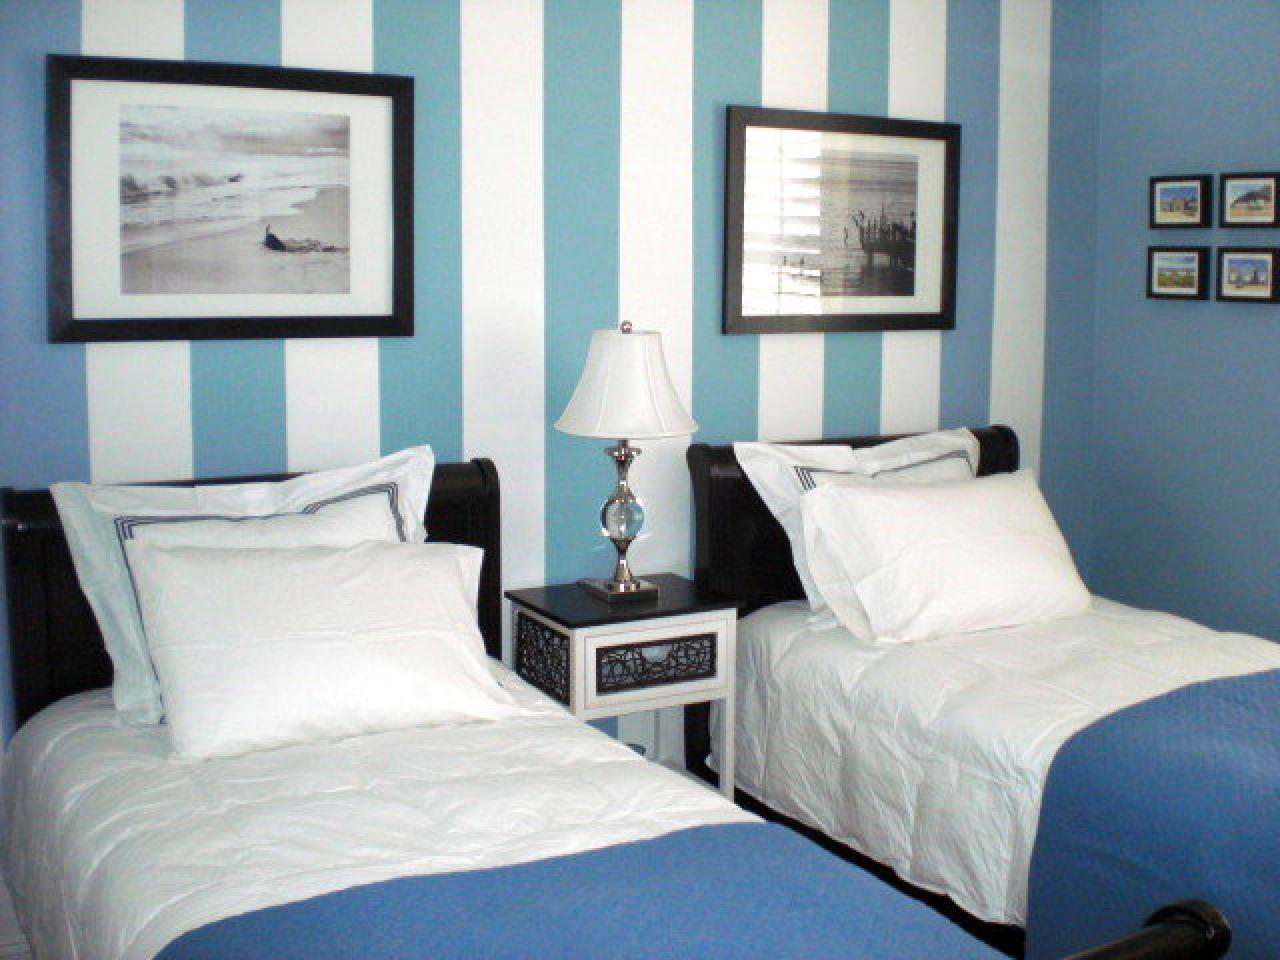 Angreeable Twin Bed Guest Room Ideas